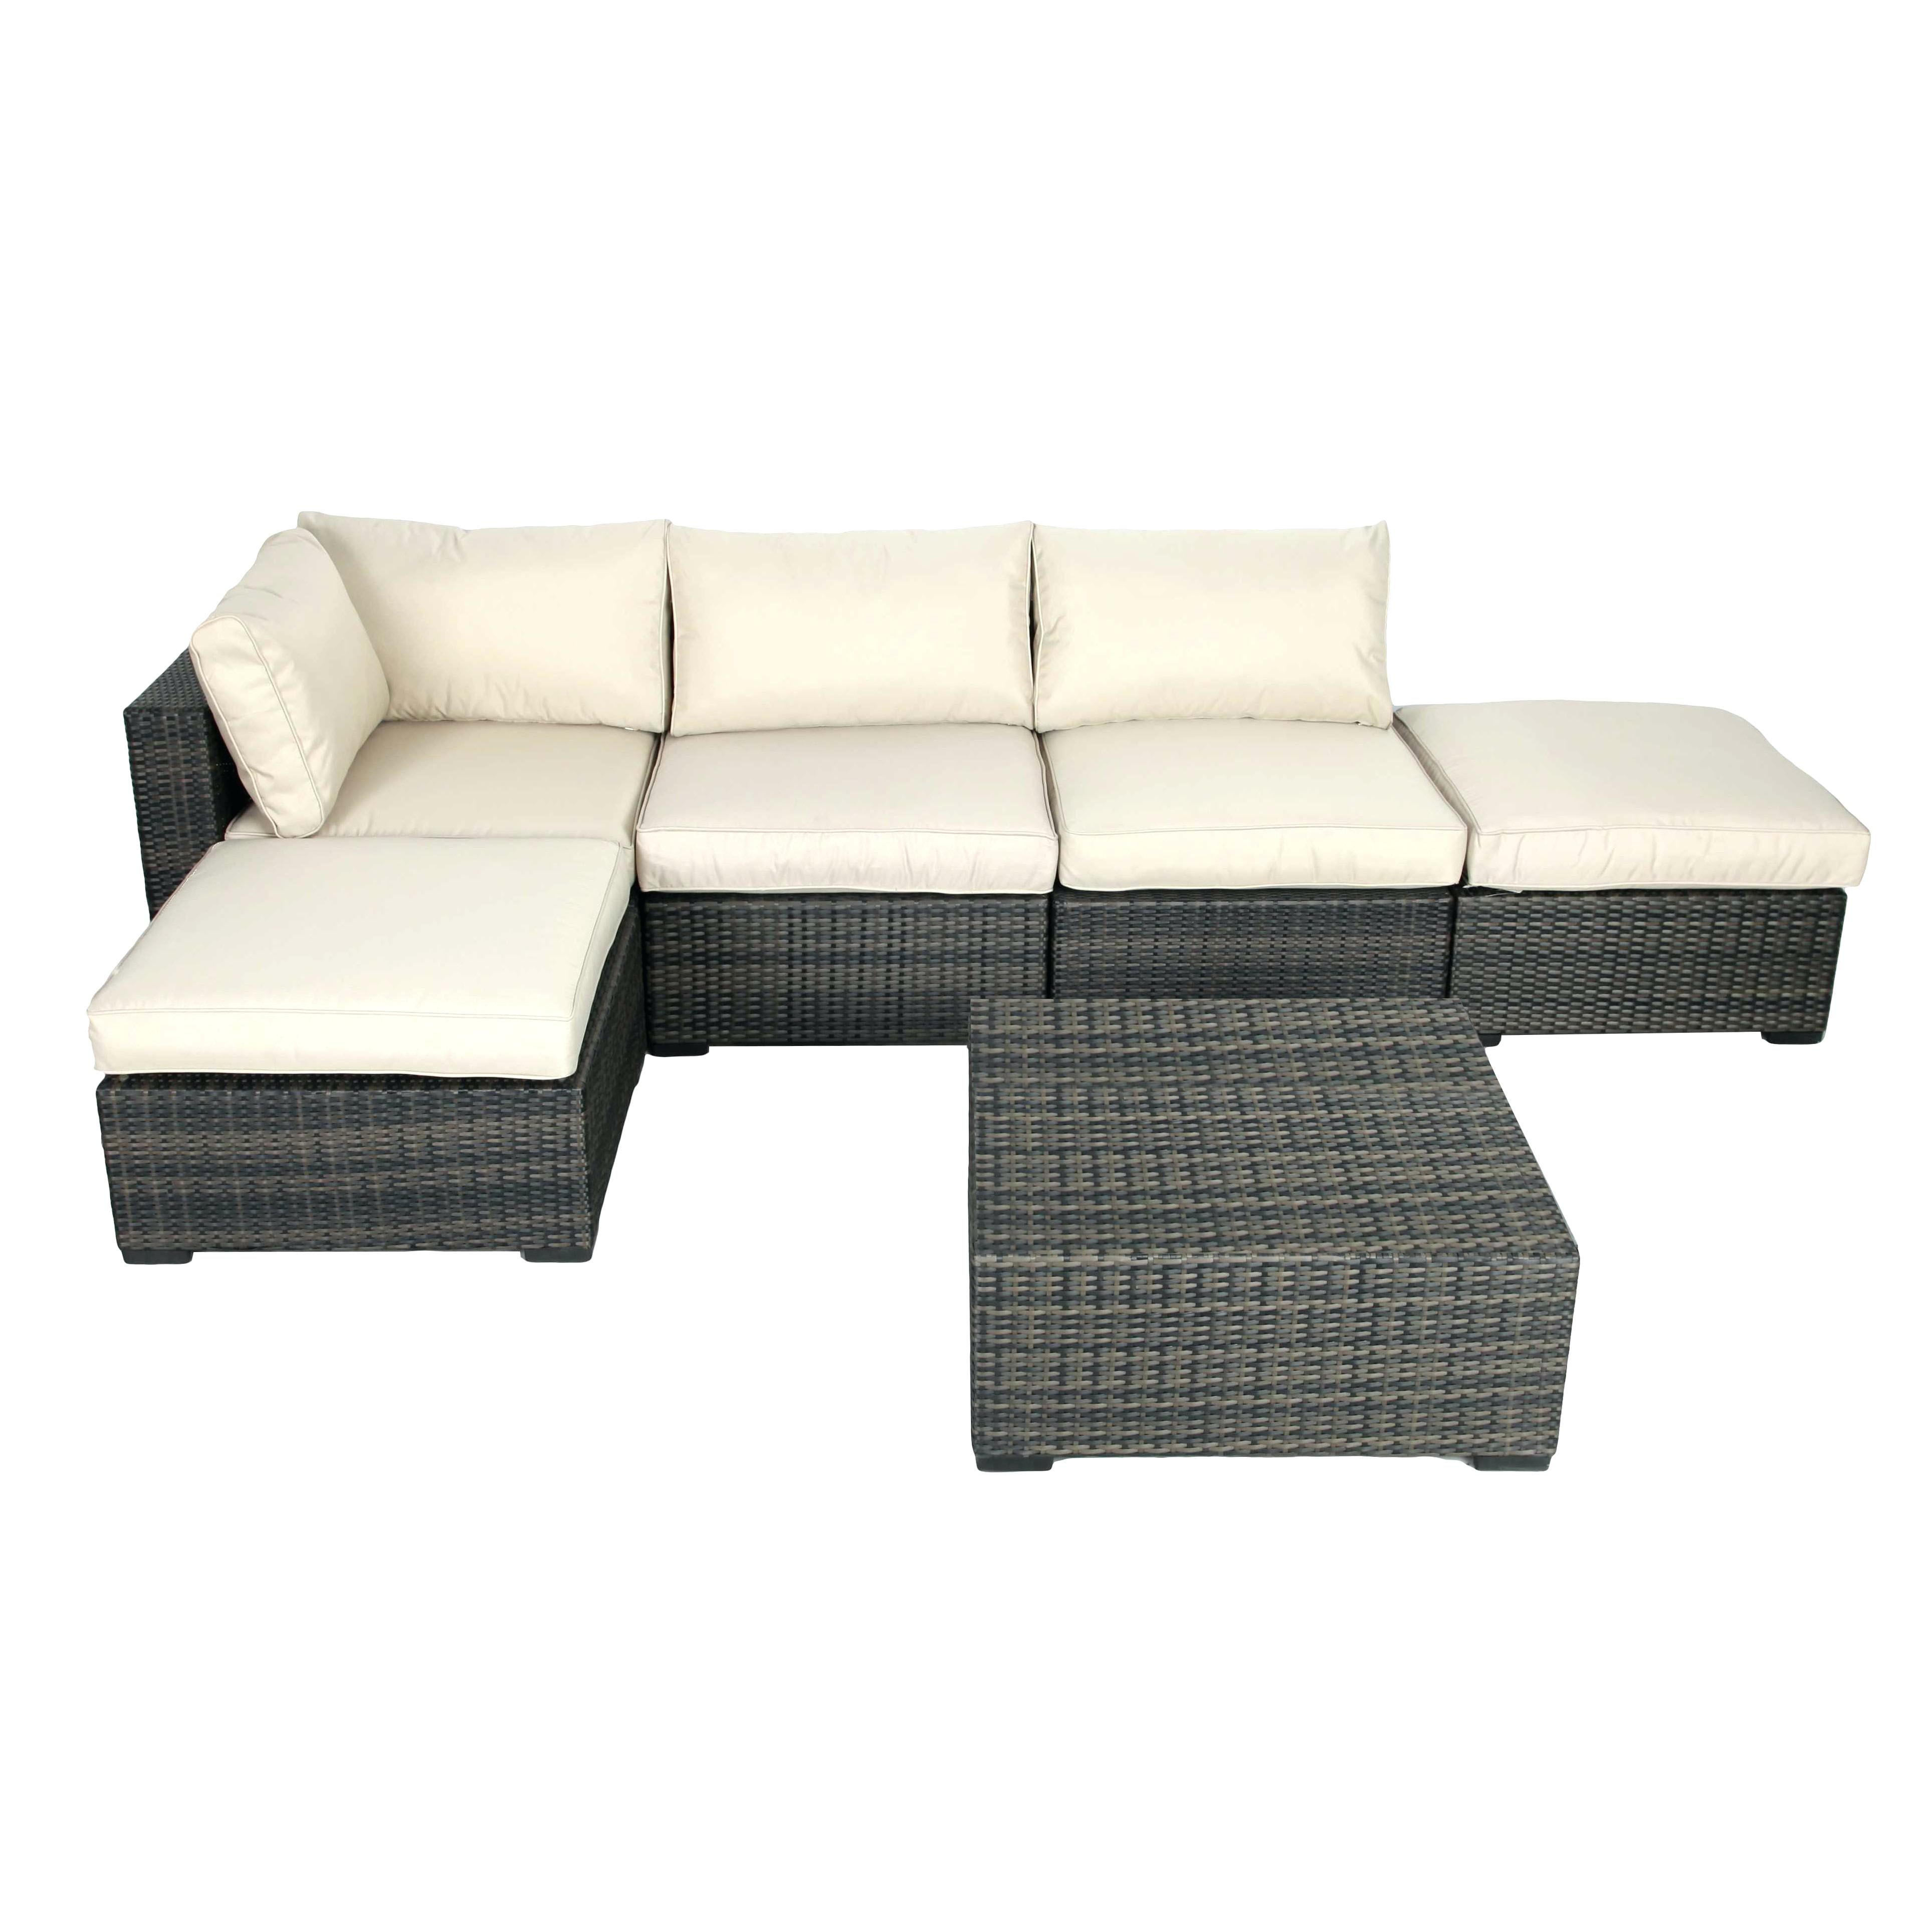 incredible power reclining sectional sofa wallpaper-Finest Power Reclining Sectional sofa Wallpaper